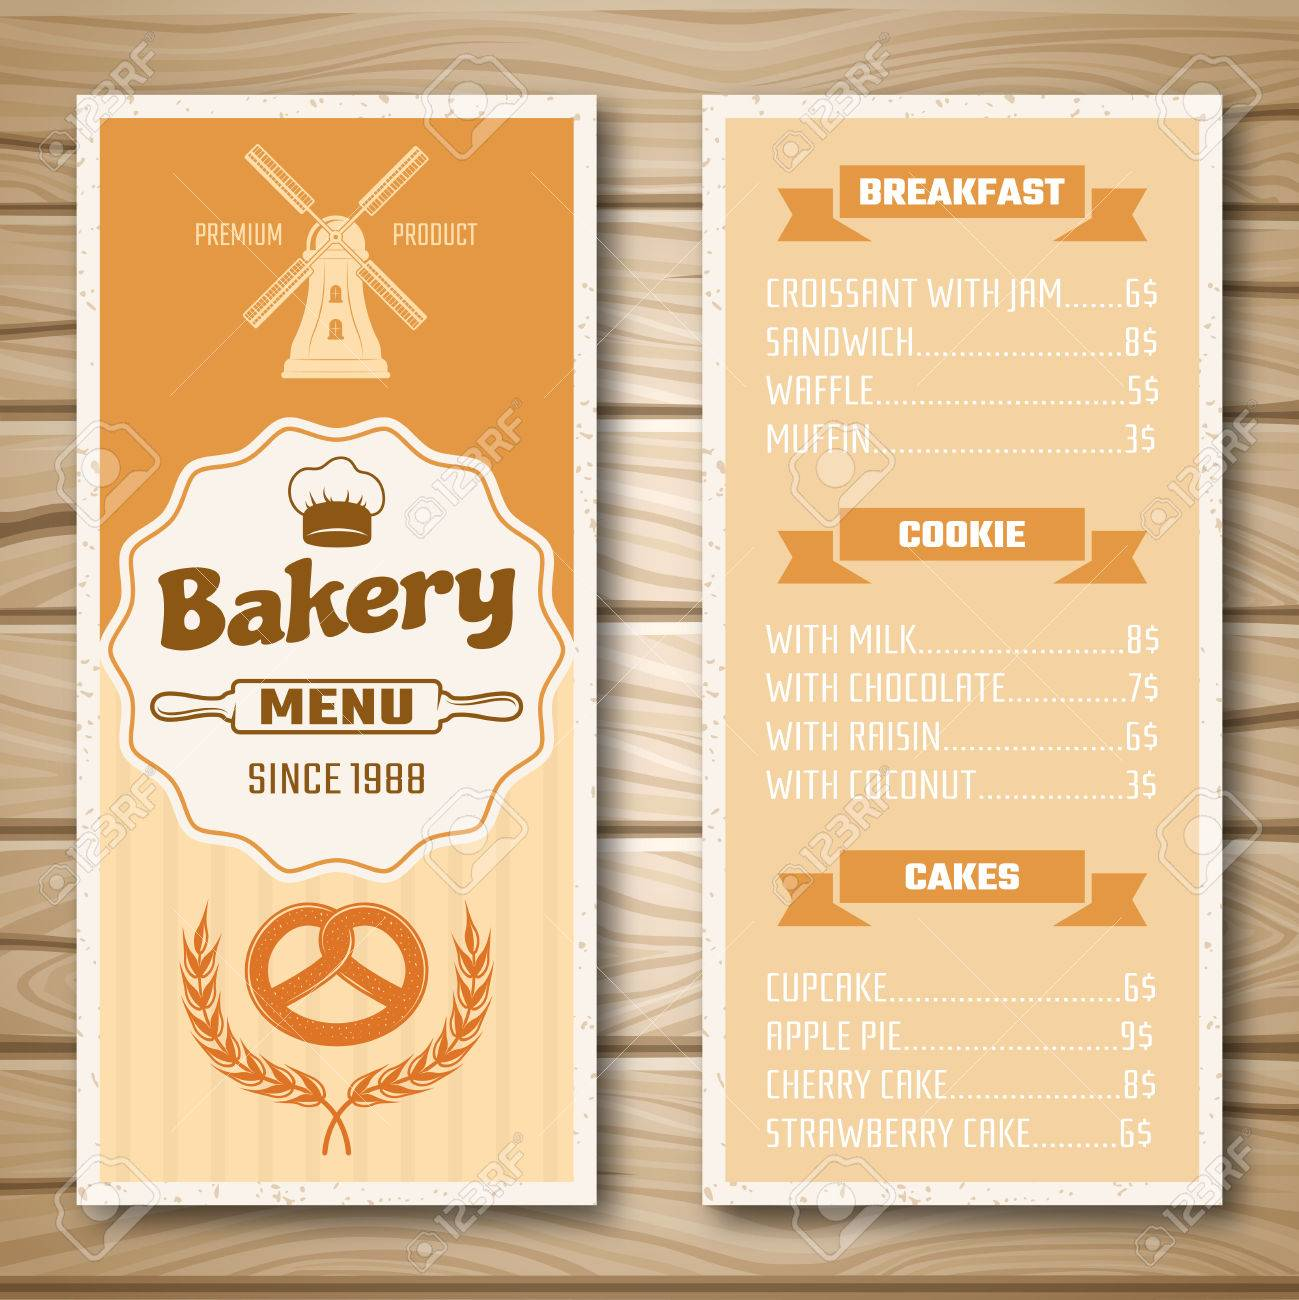 Bakery shop menu with mill at cover and product price list on bakery shop menu with mill at cover and product price list on wooden background isolated illustration altavistaventures Choice Image